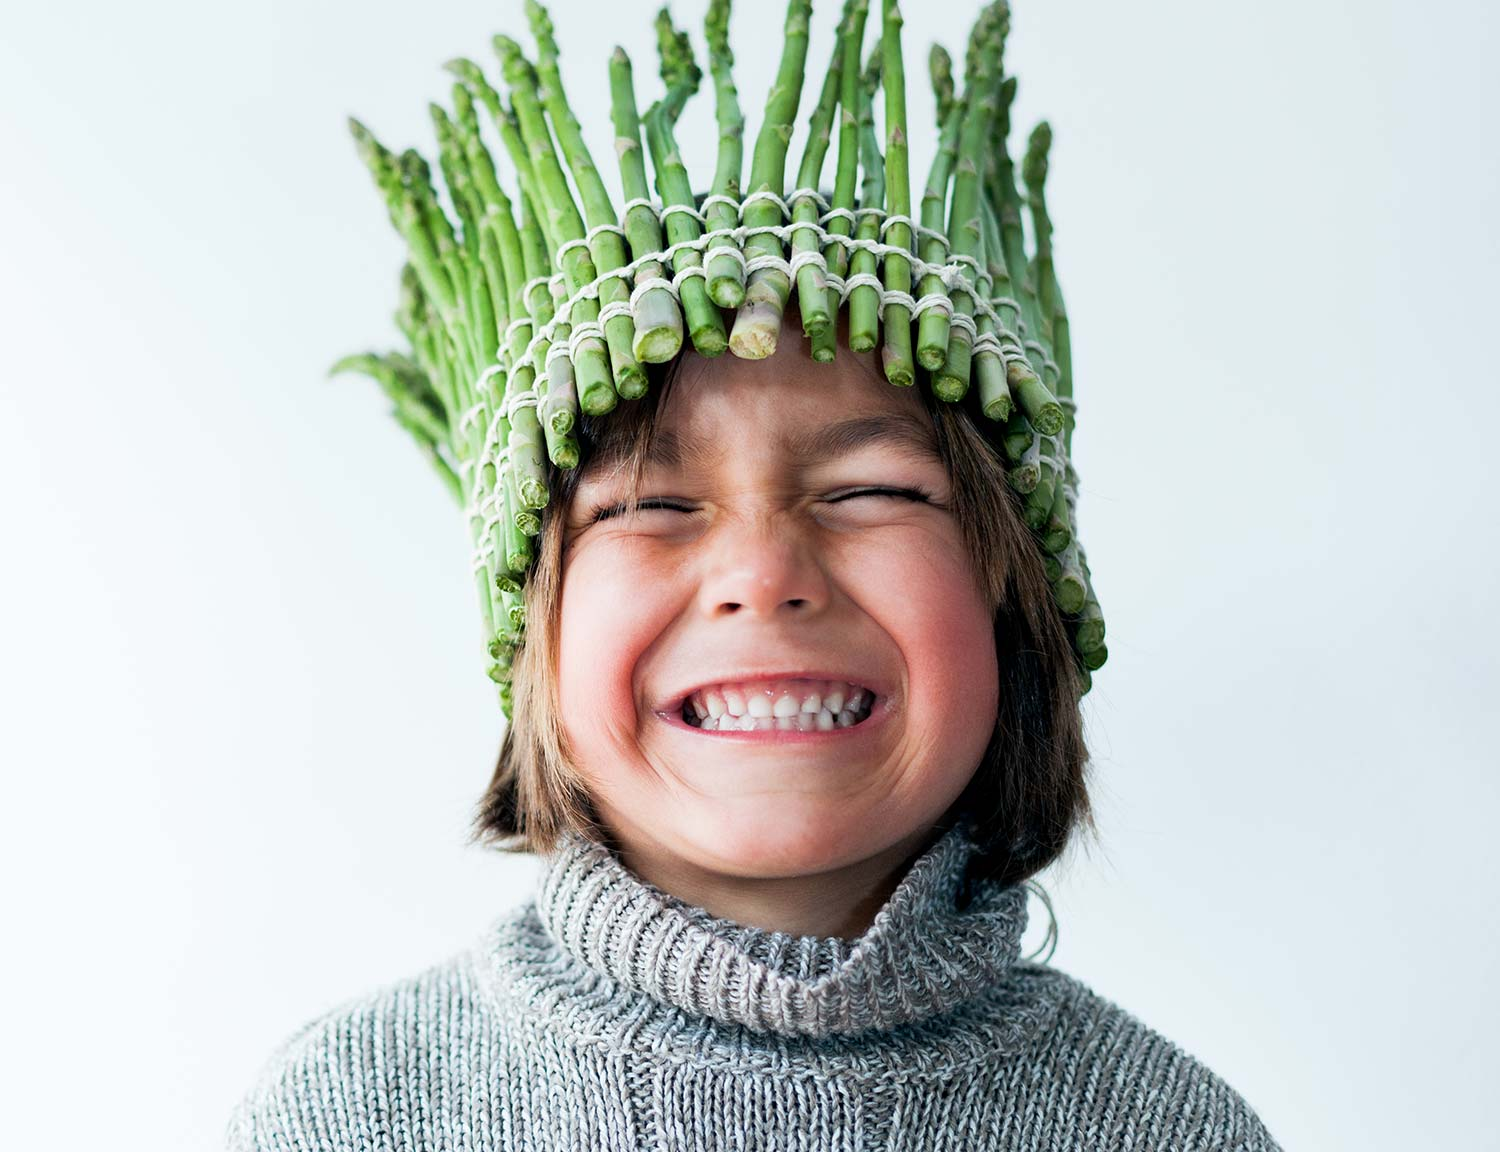 Young child wearing a crown made of asparagus